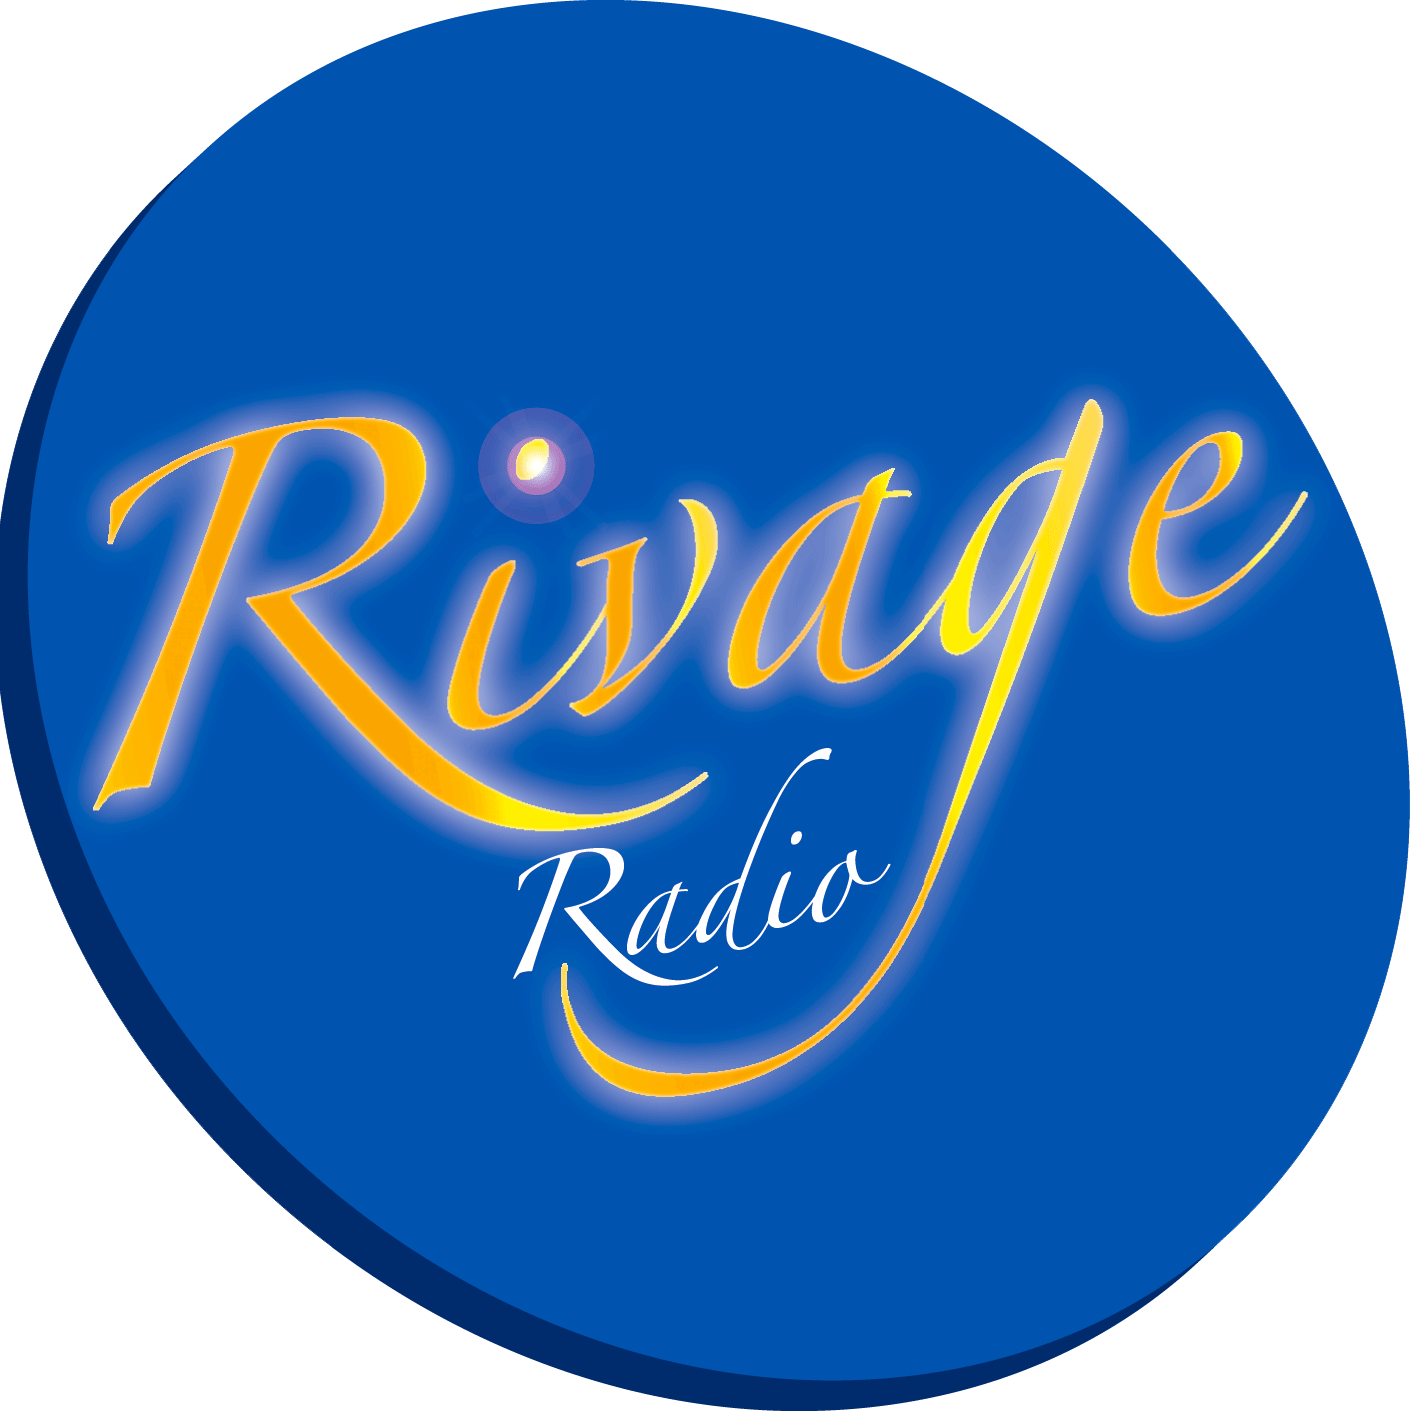 Radio Rivage